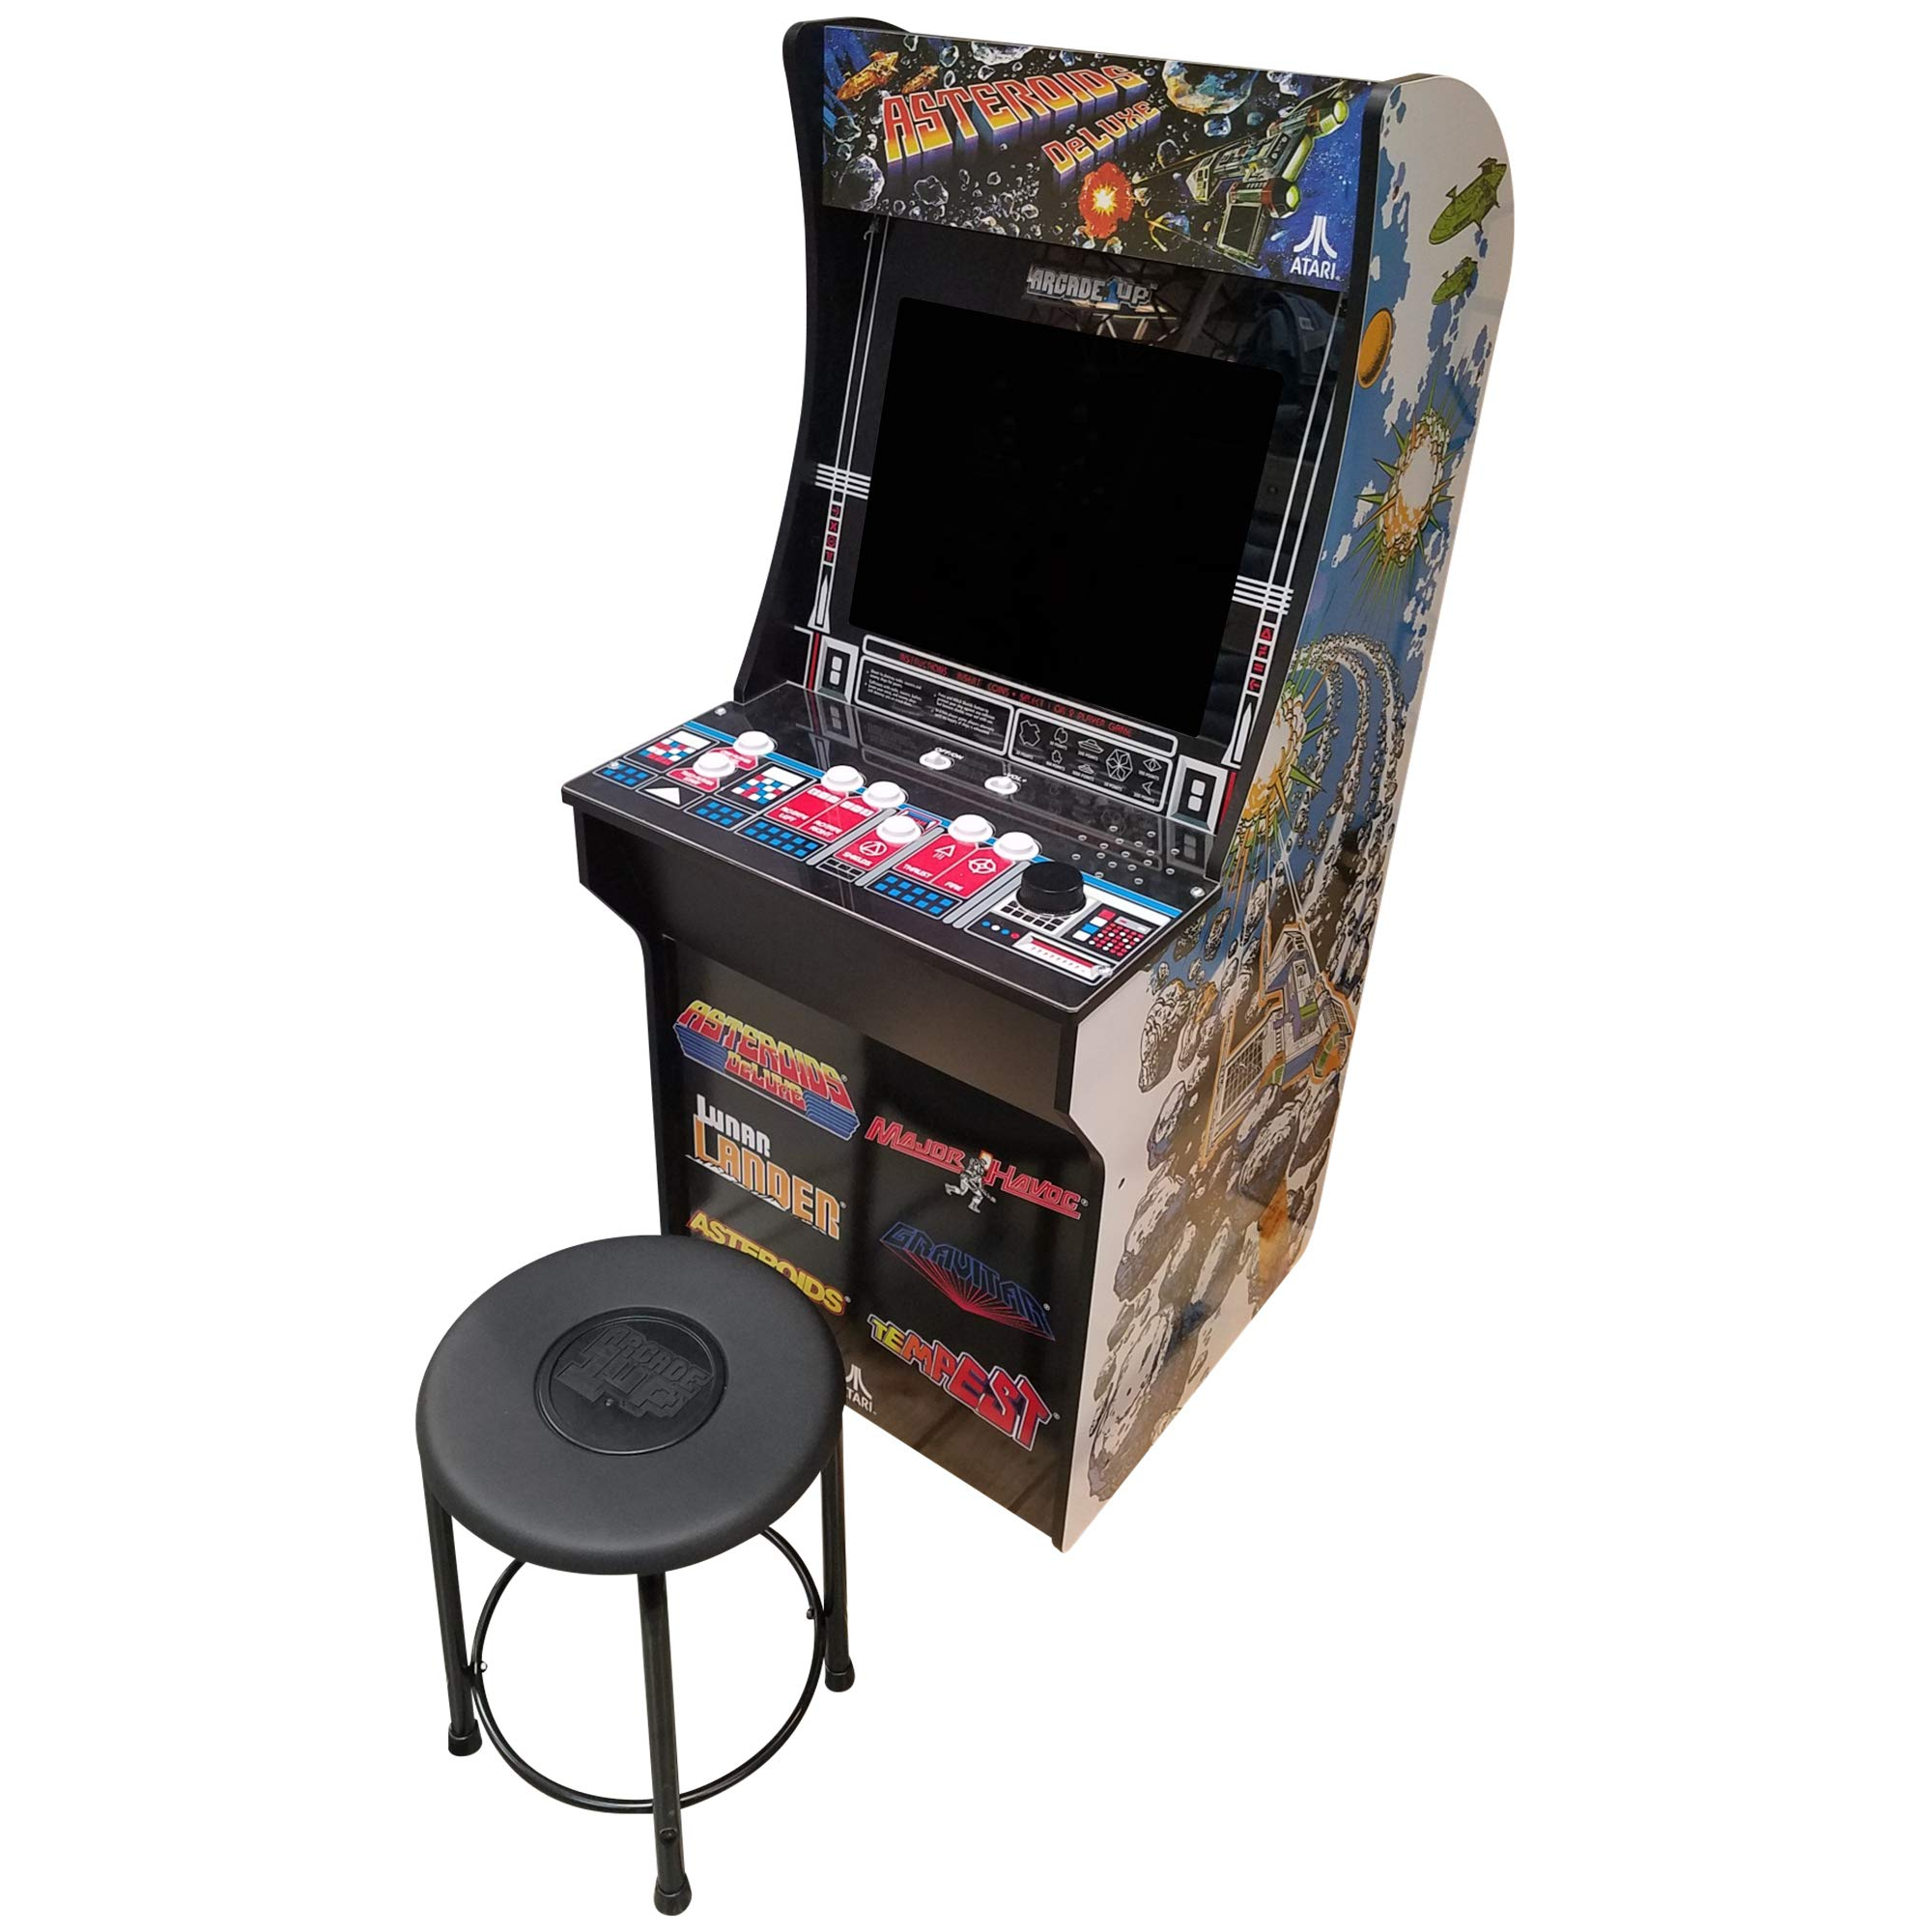 Creative Arcades 6 in 1 Atari Cabinet Arcade 1Up Machine for Home | 6 Classic Games Pre-Installed | Plug and Play - Fully Assembled | 1 - 2 Player | Stool Included | 17'' Screen | Coinless Operation by Creative Outdoor Distributor (Image #1)